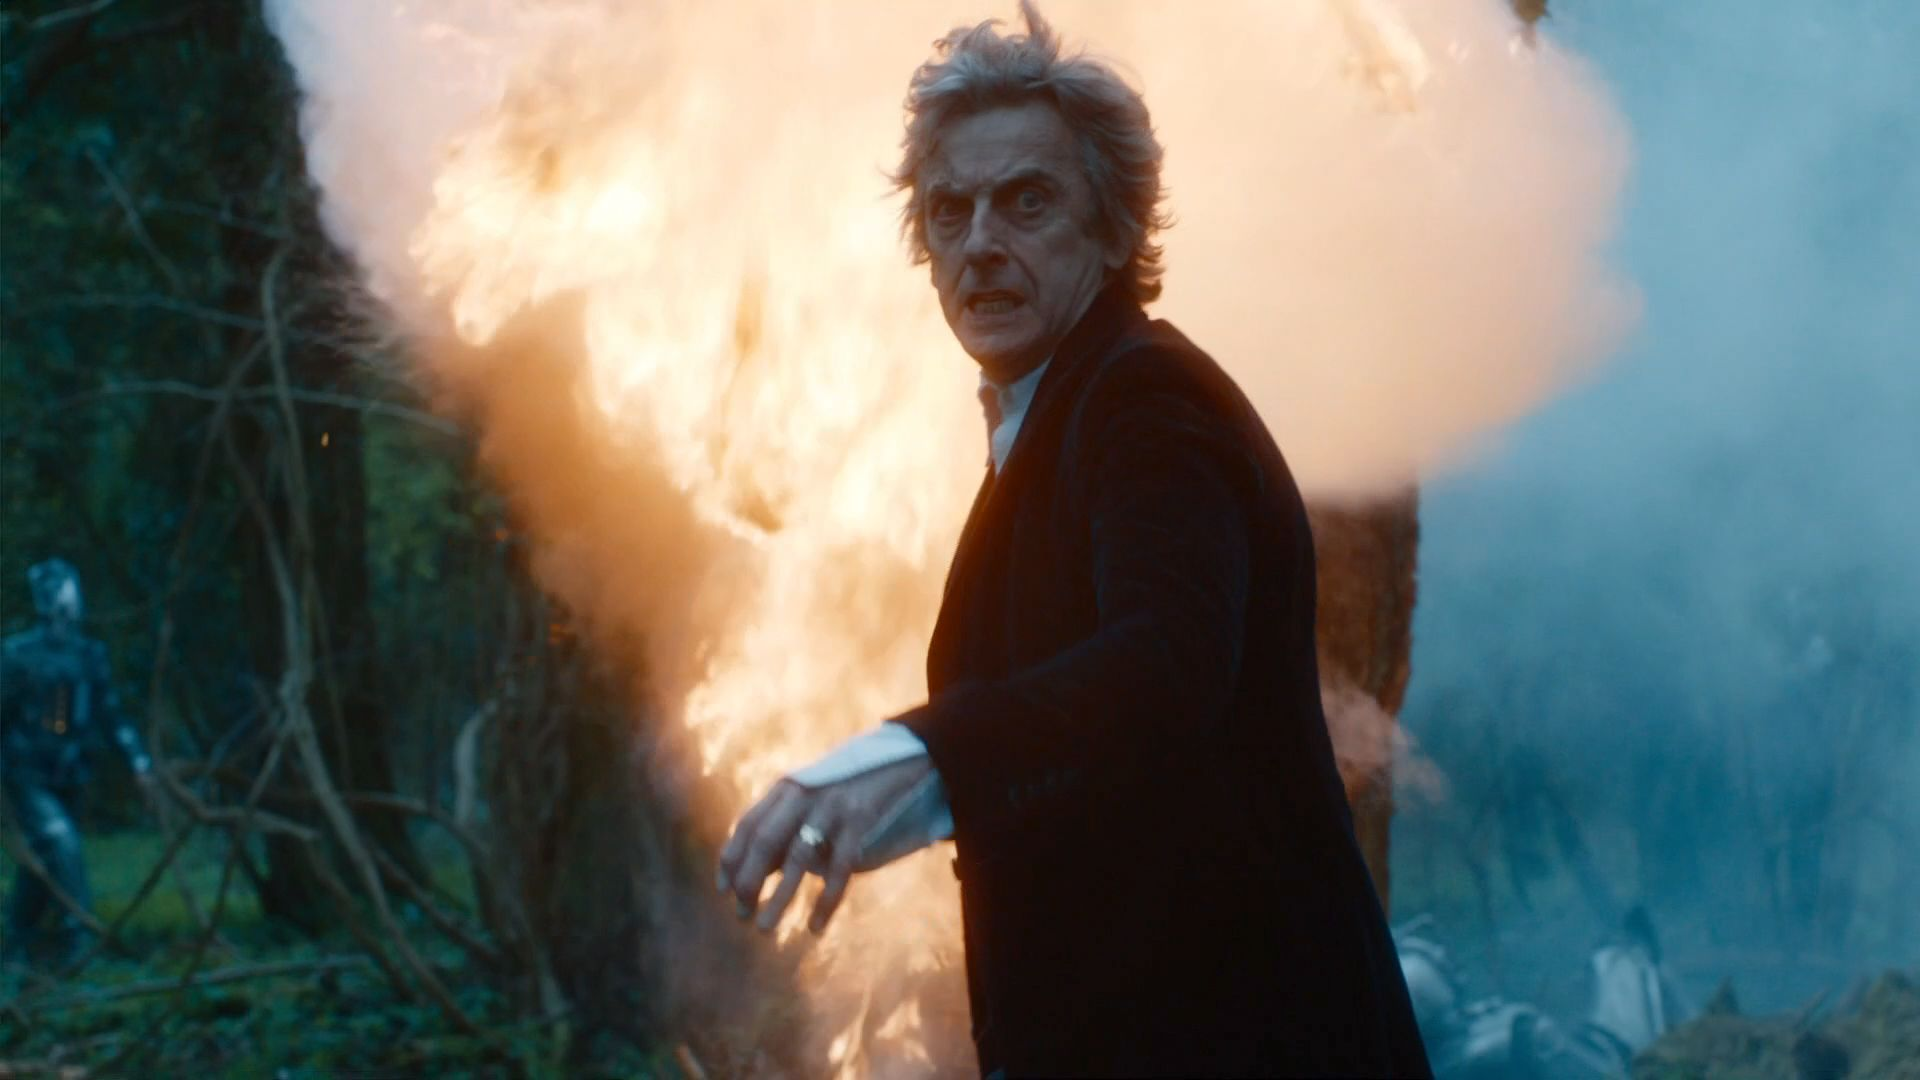 The Doctor Falls Doctor Who S10e12 Tvmaze